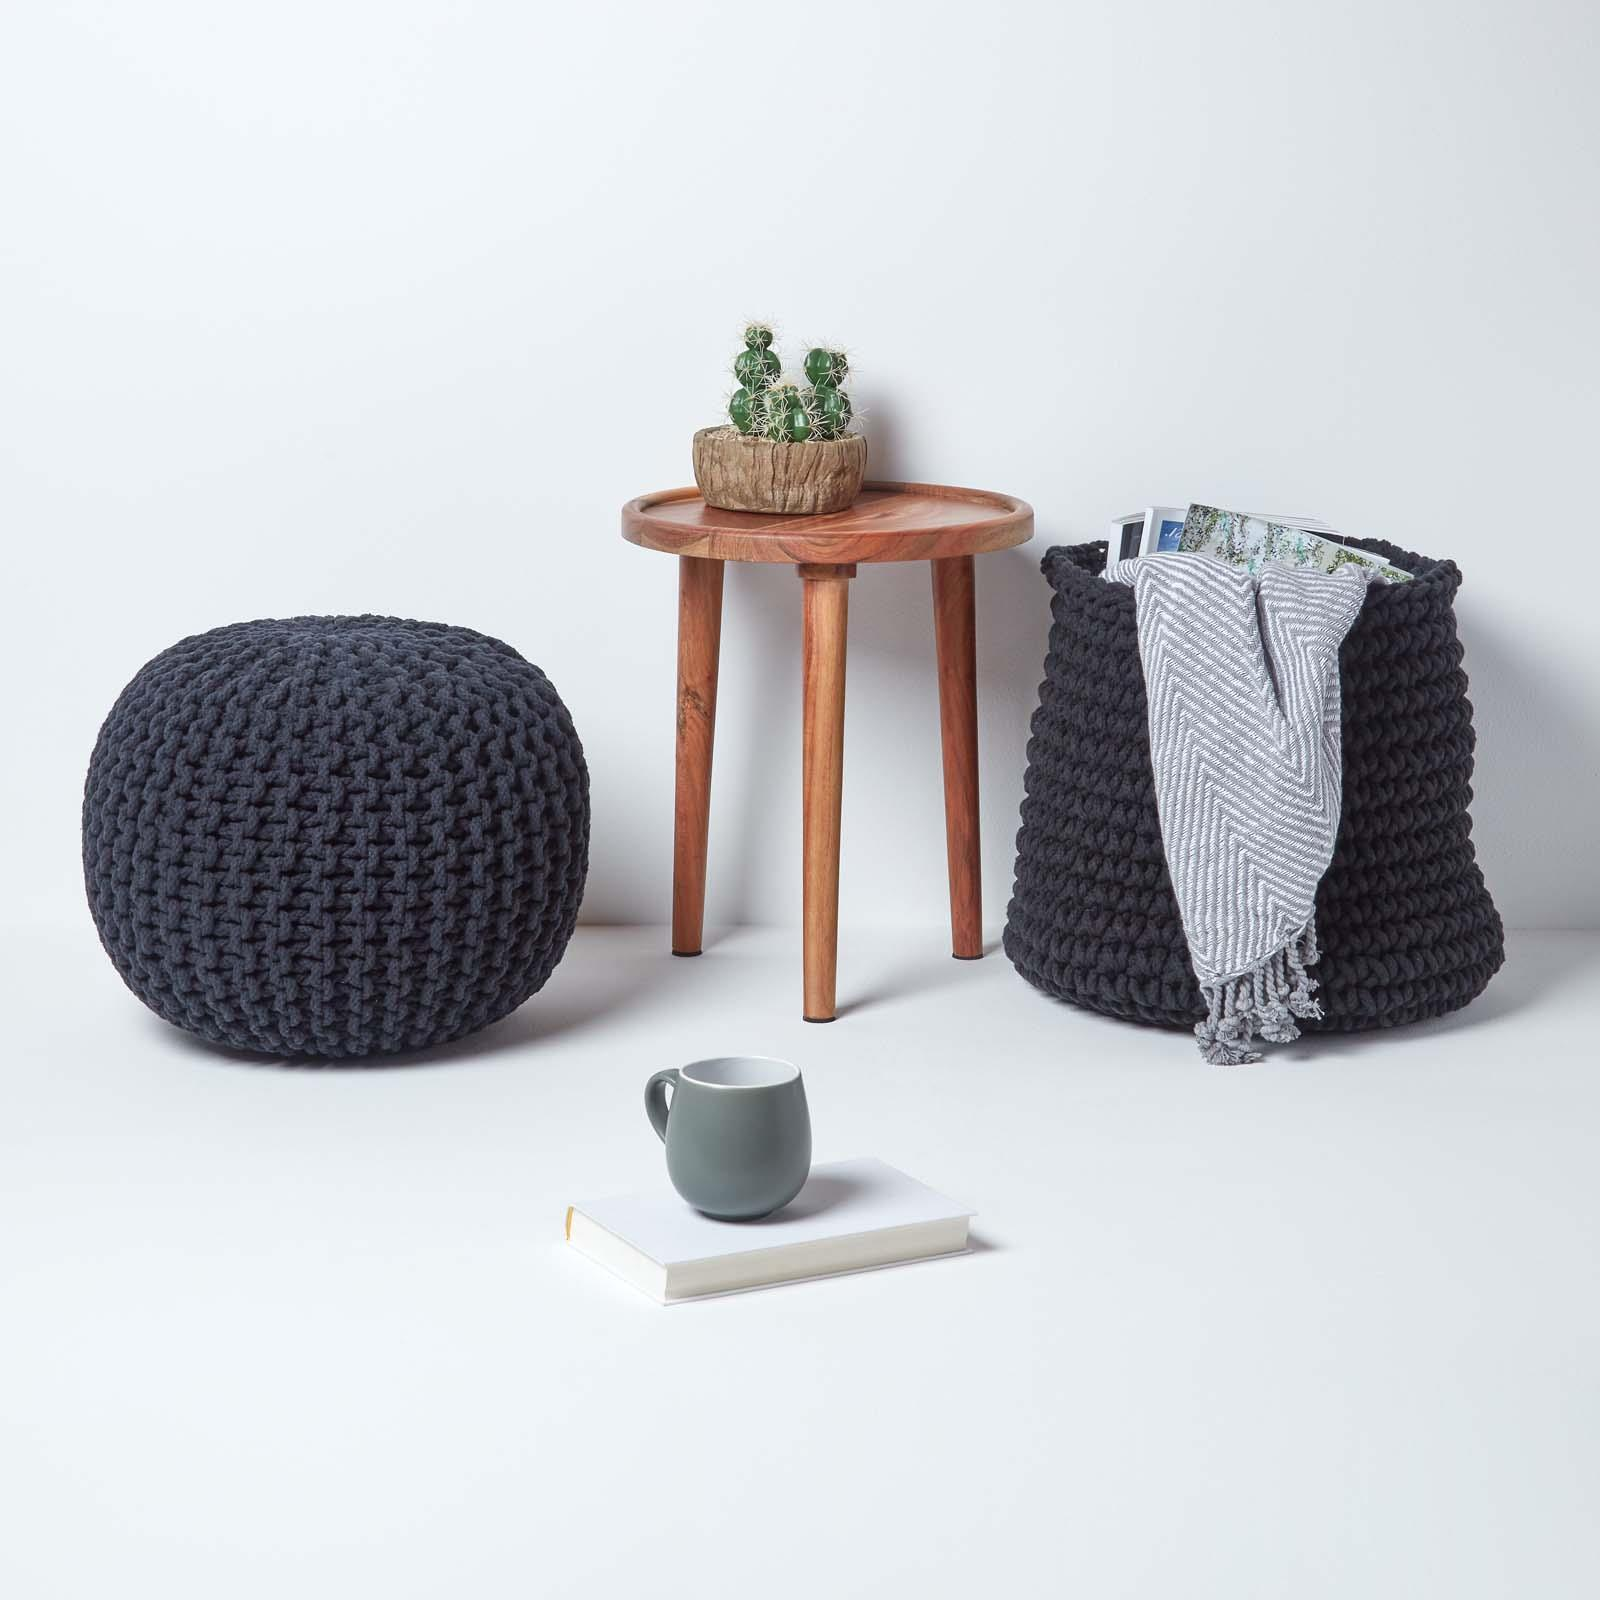 Hand-Knitted-100-Cotton-Pouffes-Round-Sphere-Or-Cube-Square-Chunky-Footstools thumbnail 9